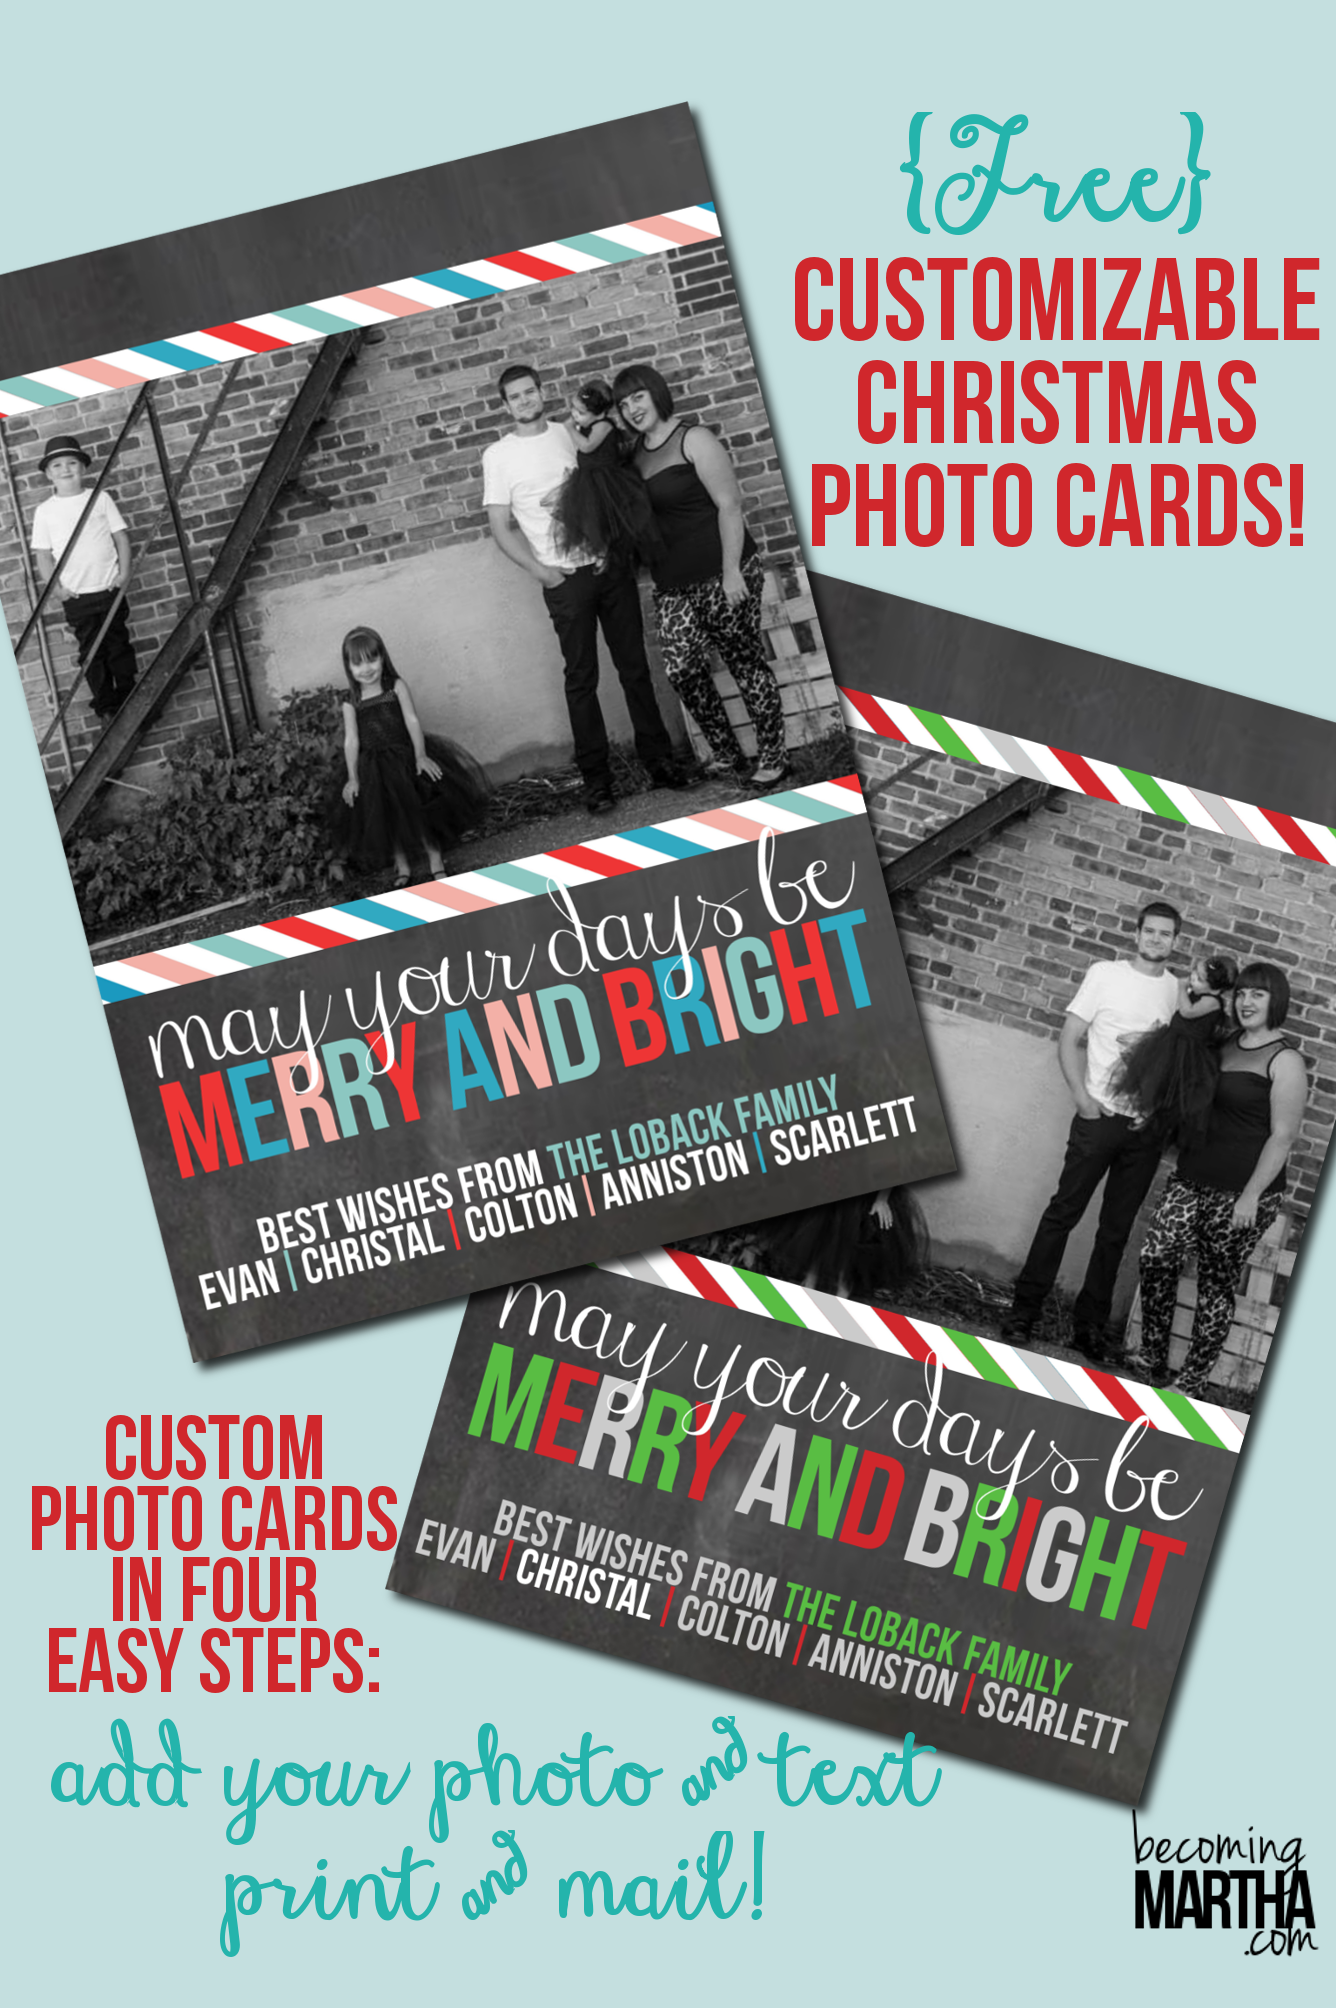 Free Printable Christmas Cards Customize With Your Own Photo Free Printable Christmas Cards Christmas Card Template Free Christmas Printables